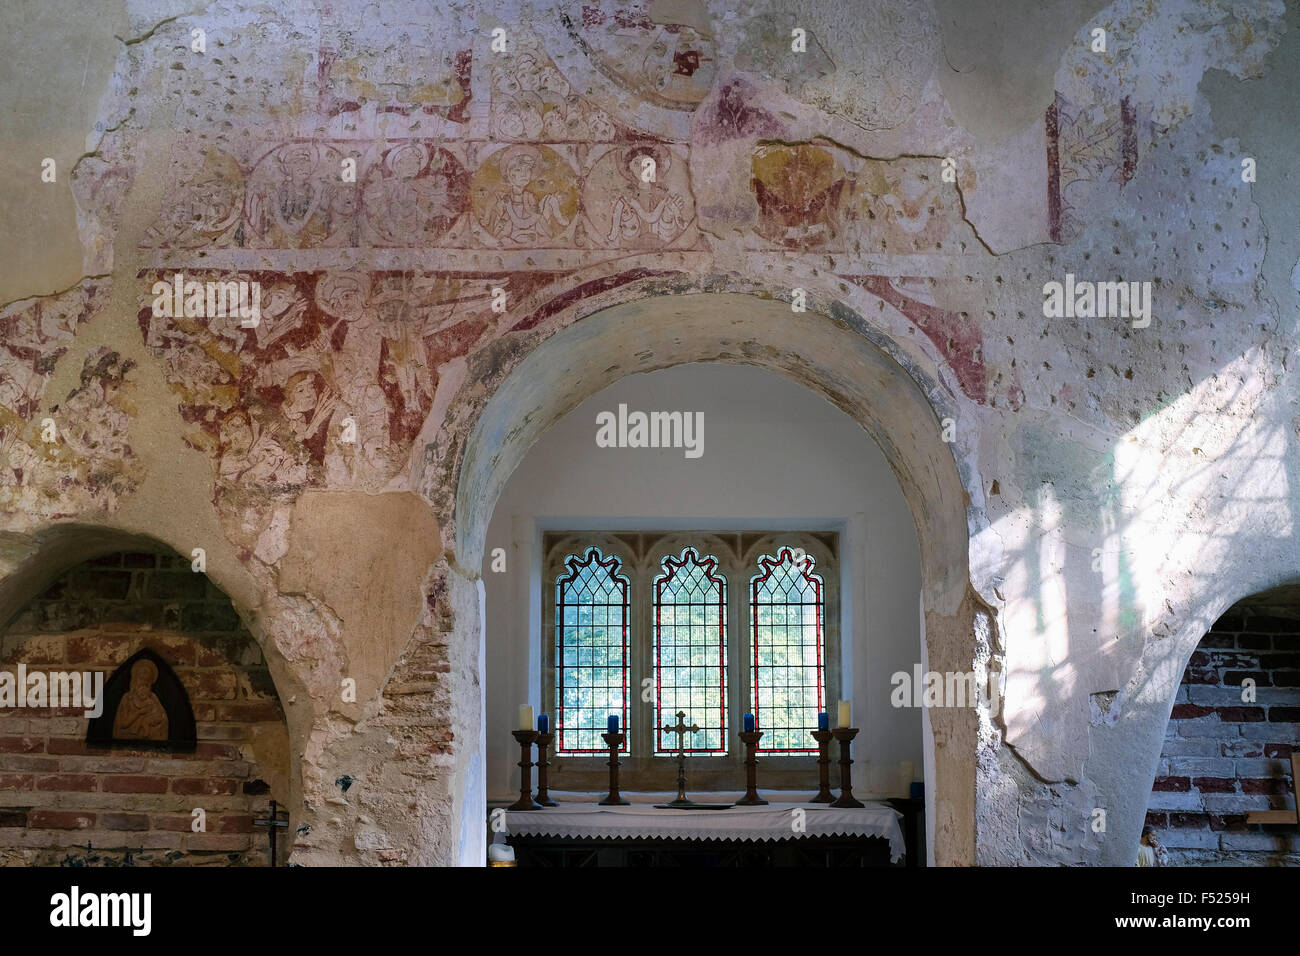 11th century Romanesque wall paintings at Saint Mary's Parish Church, Houghton on the Hill, Norfolk, UK - Stock Image